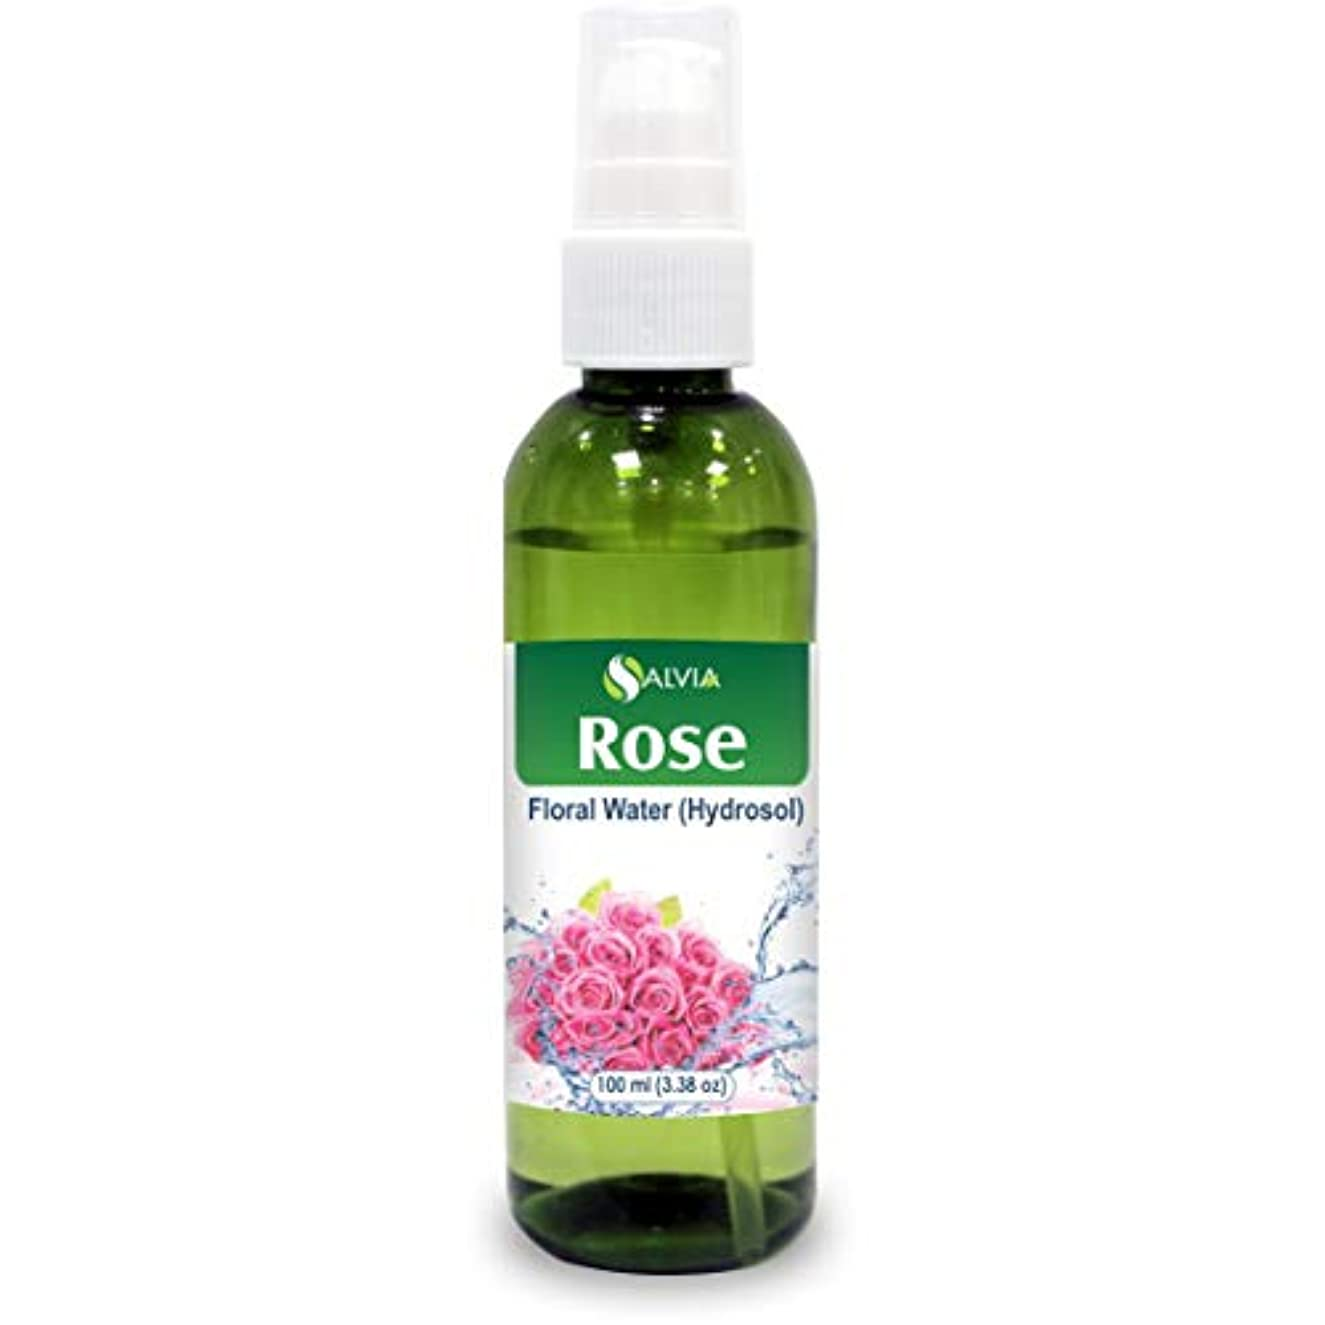 Rose Floral Water 100ml (Hydrosol) 100% Pure And Natural